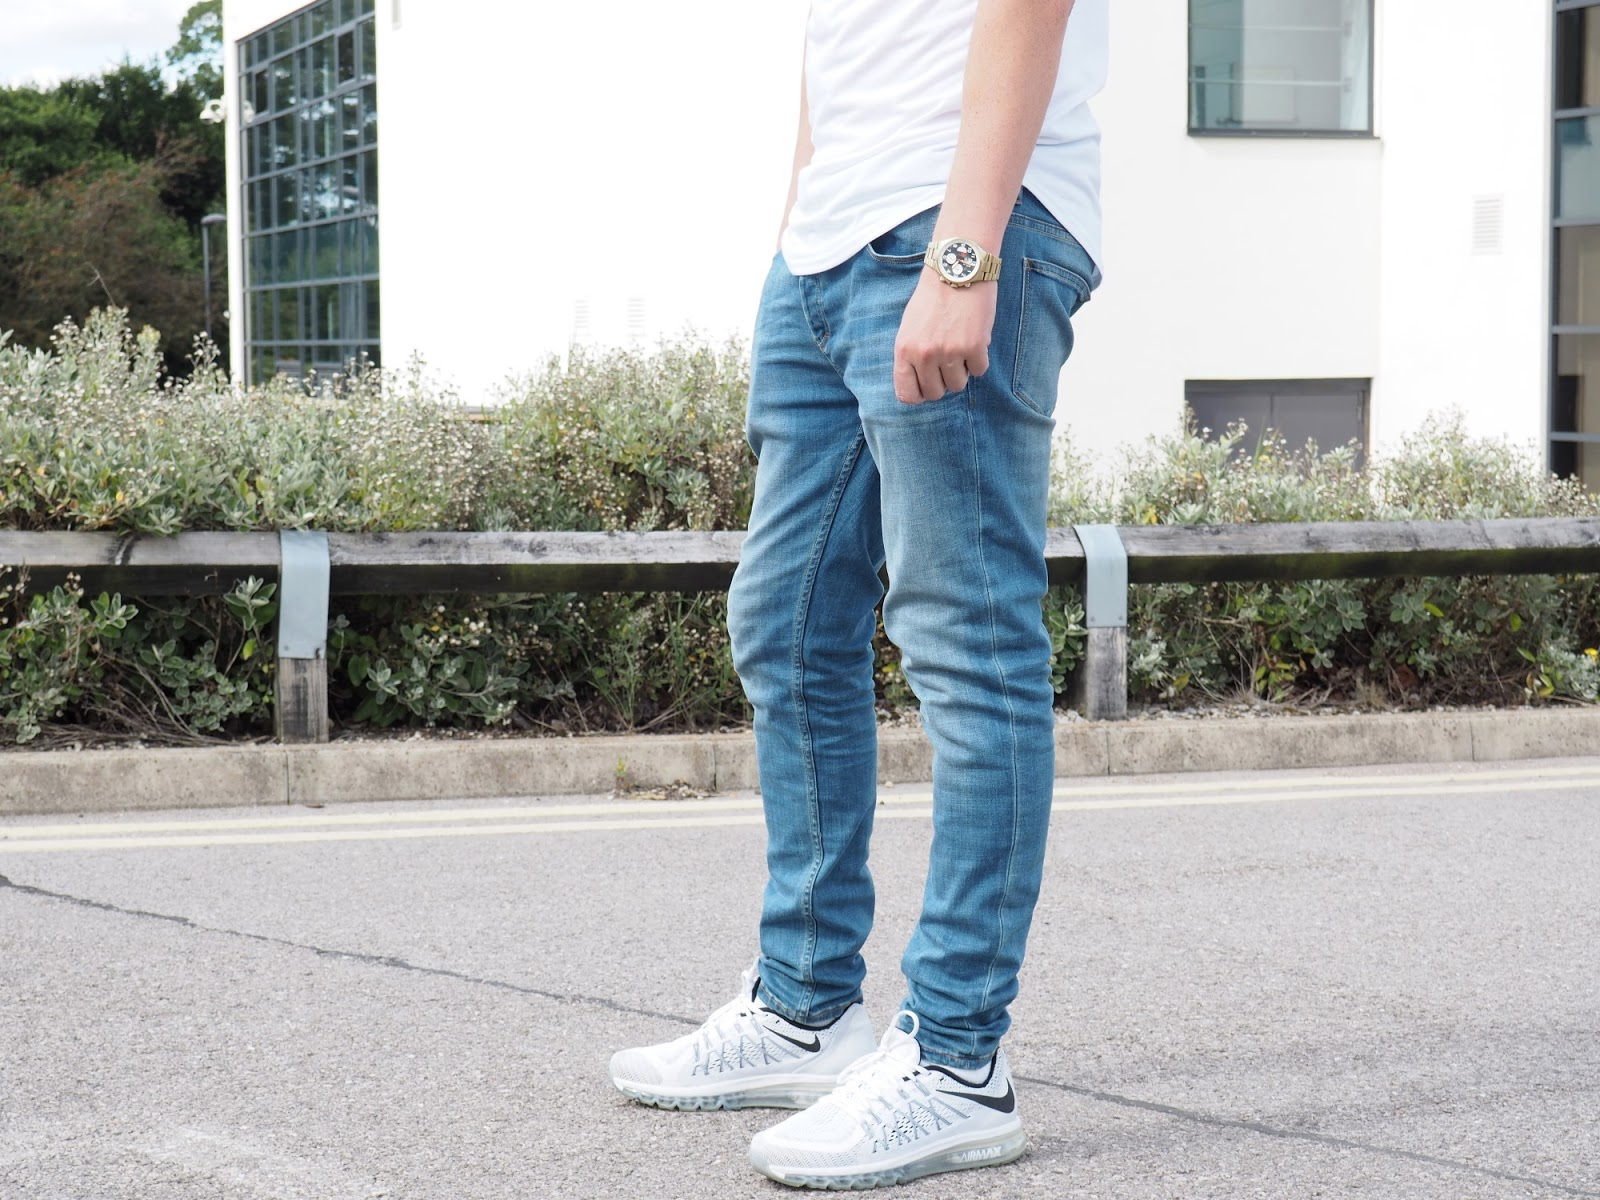 How To Style Black Ripped Jeans On Fashion Blog Lurchhoundloves